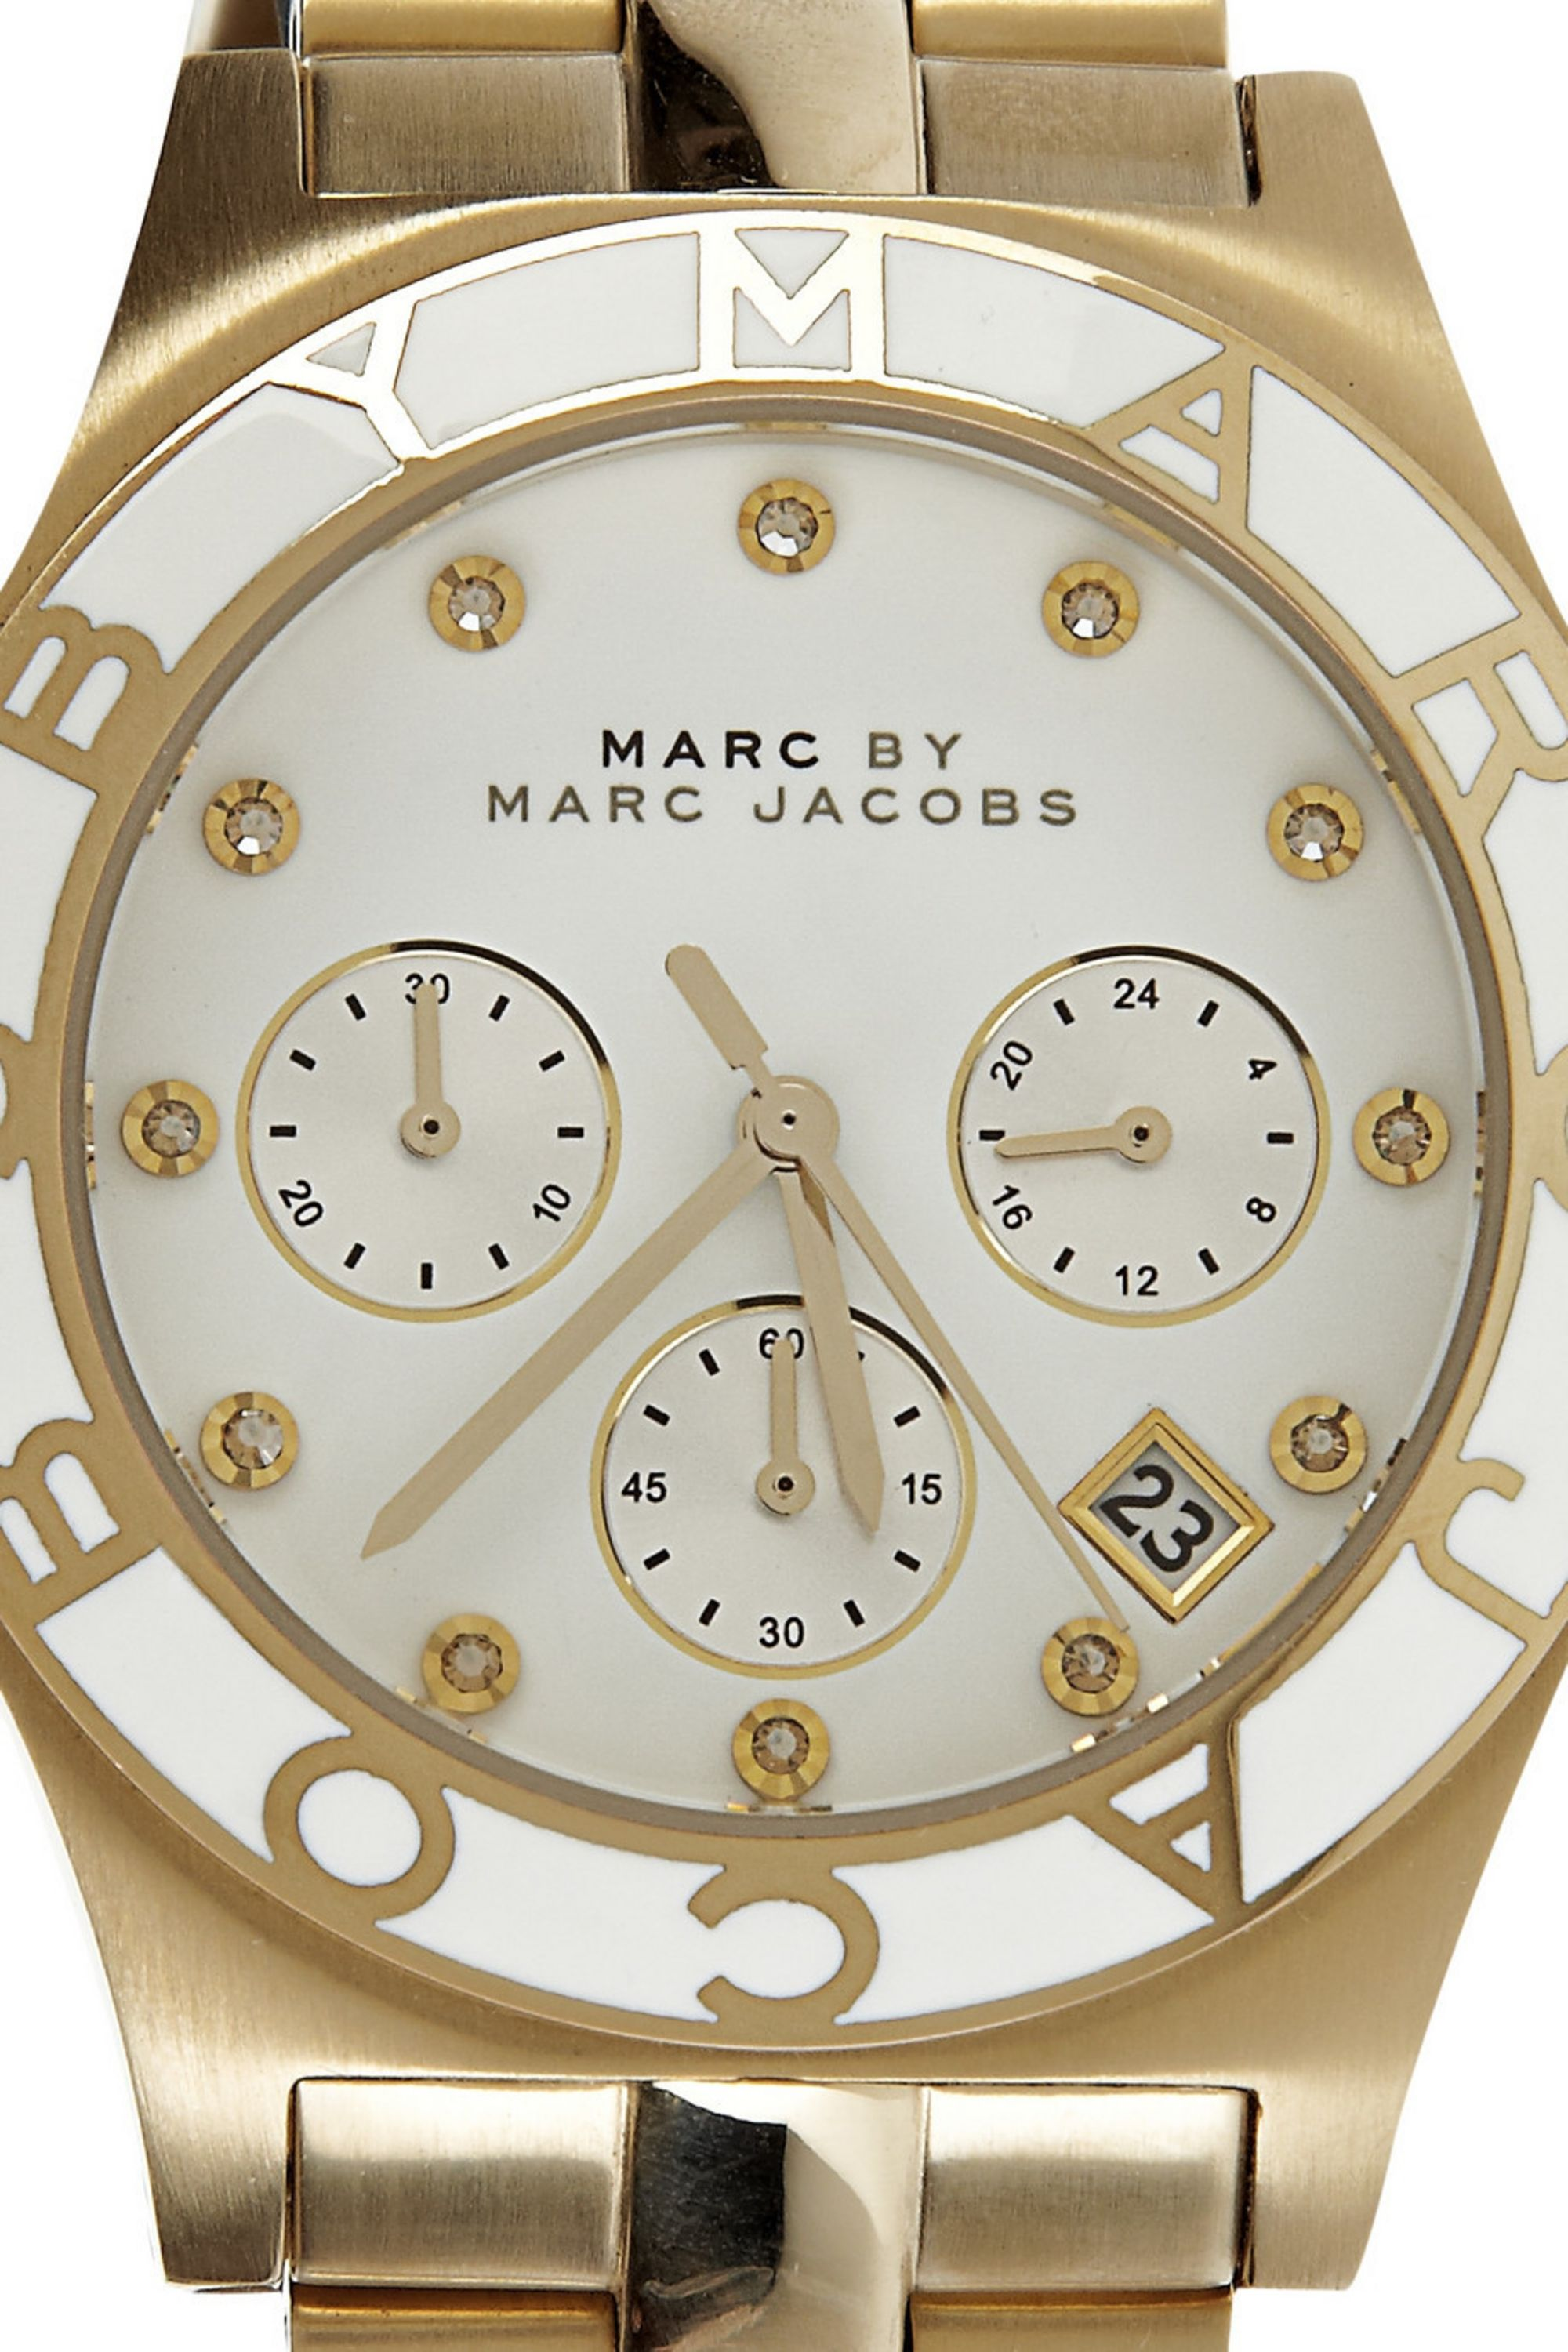 Marc by Marc Jacobs Gold-plated stainless steel watch